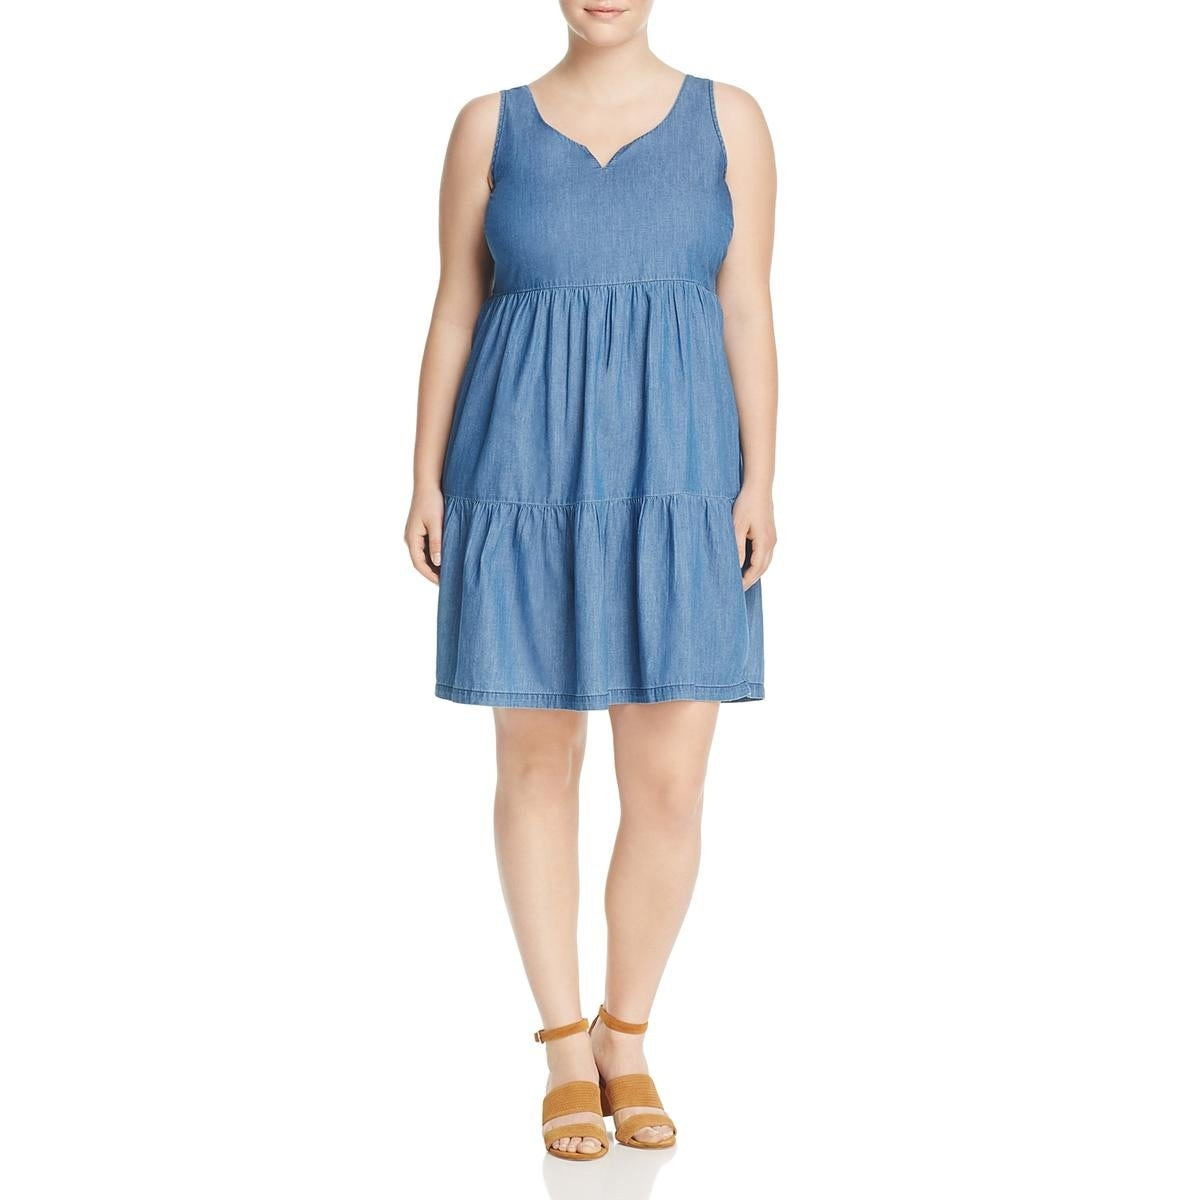 947548ee121 Shop Junarose Womens Plus Jrmira Casual Dress Sleeveless Above Knee - On  Sale - Free Shipping On Orders Over  45 - Overstock - 22996527